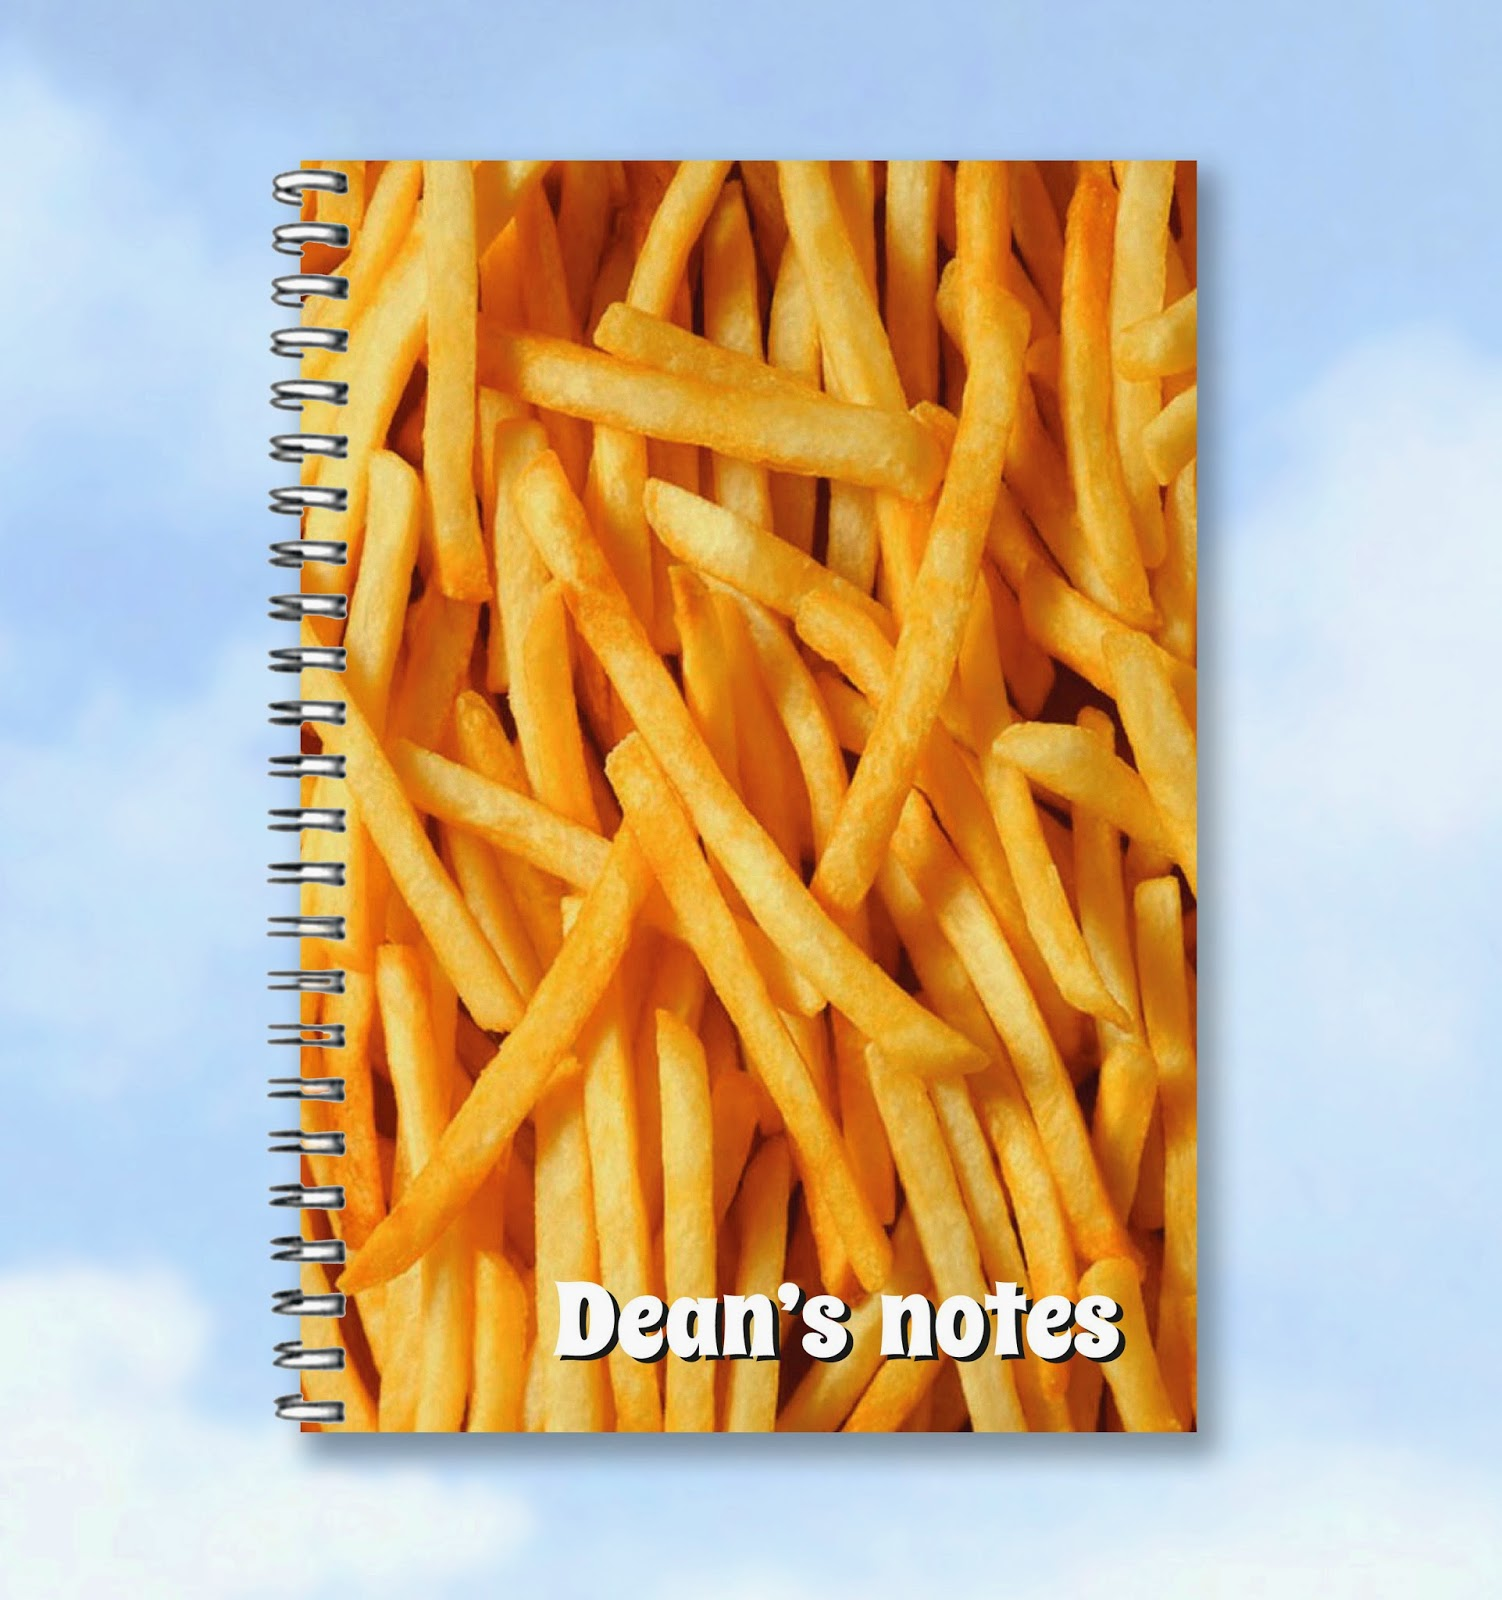 Yummy Chips notebook